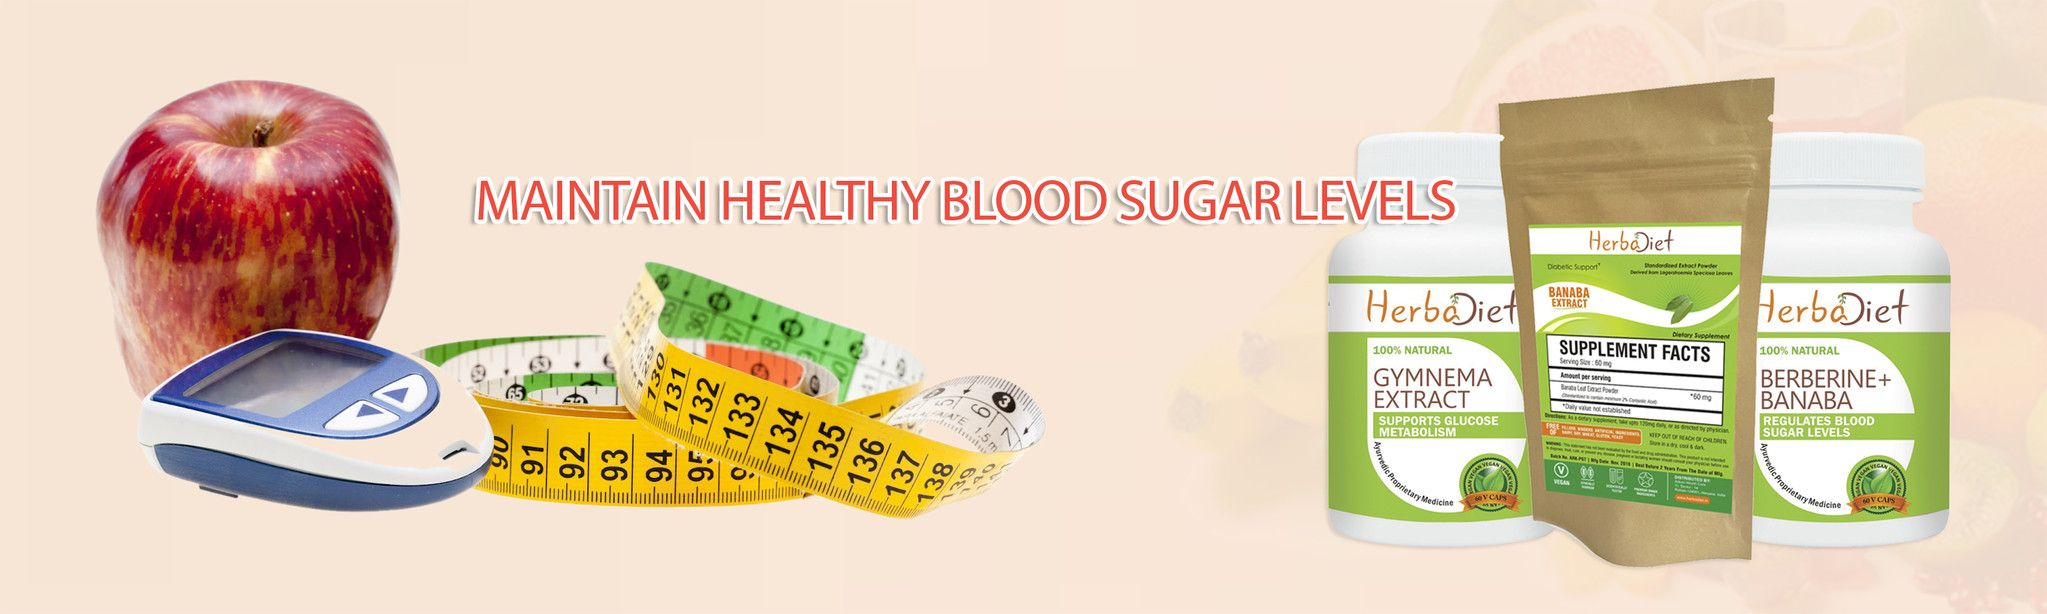 Are you suffering from diabetes? No need to worry, we are here to help you! Herbadiet is offering natural herbal supplements for diabetes at very low cost. To know more about to maintain sugar level please visit at https://www.herbadiet.in/collections/diabetic-support